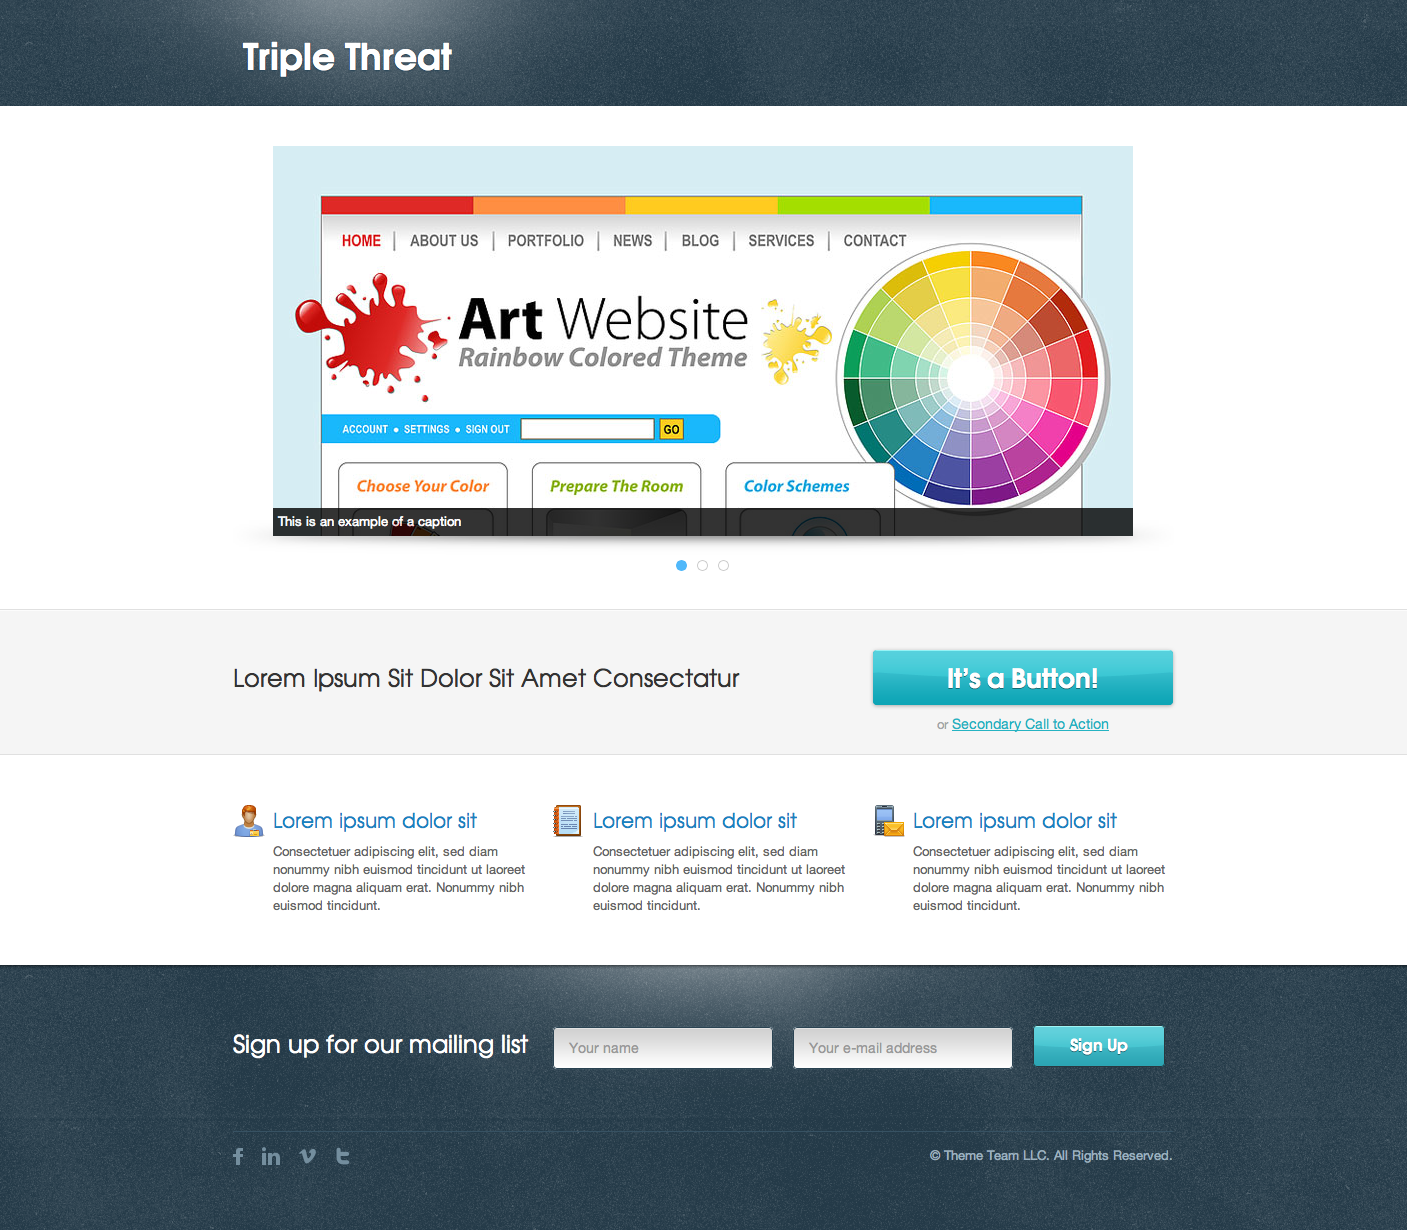 Triple Threat Landing Page